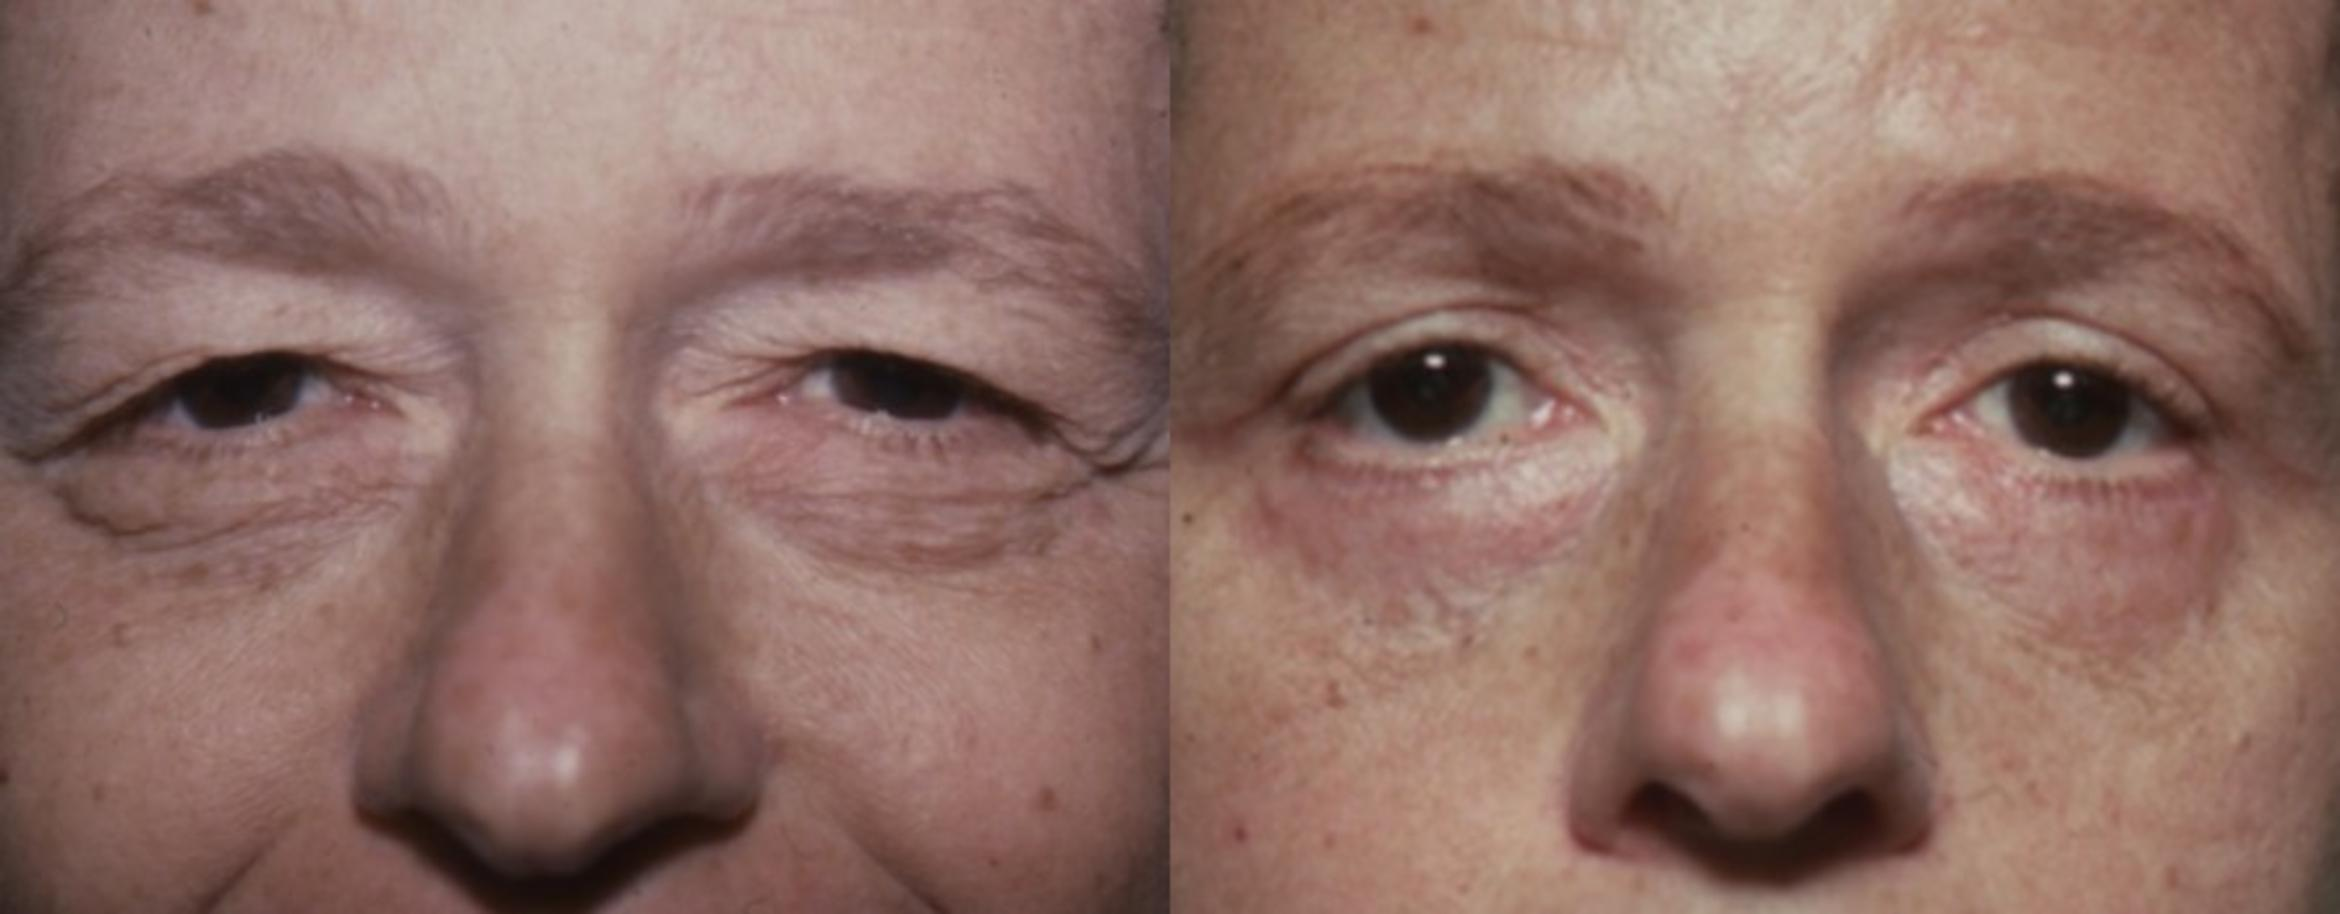 Blepharoplasty Before & After Photo | Jersey City, New Jersey | The Derm Group